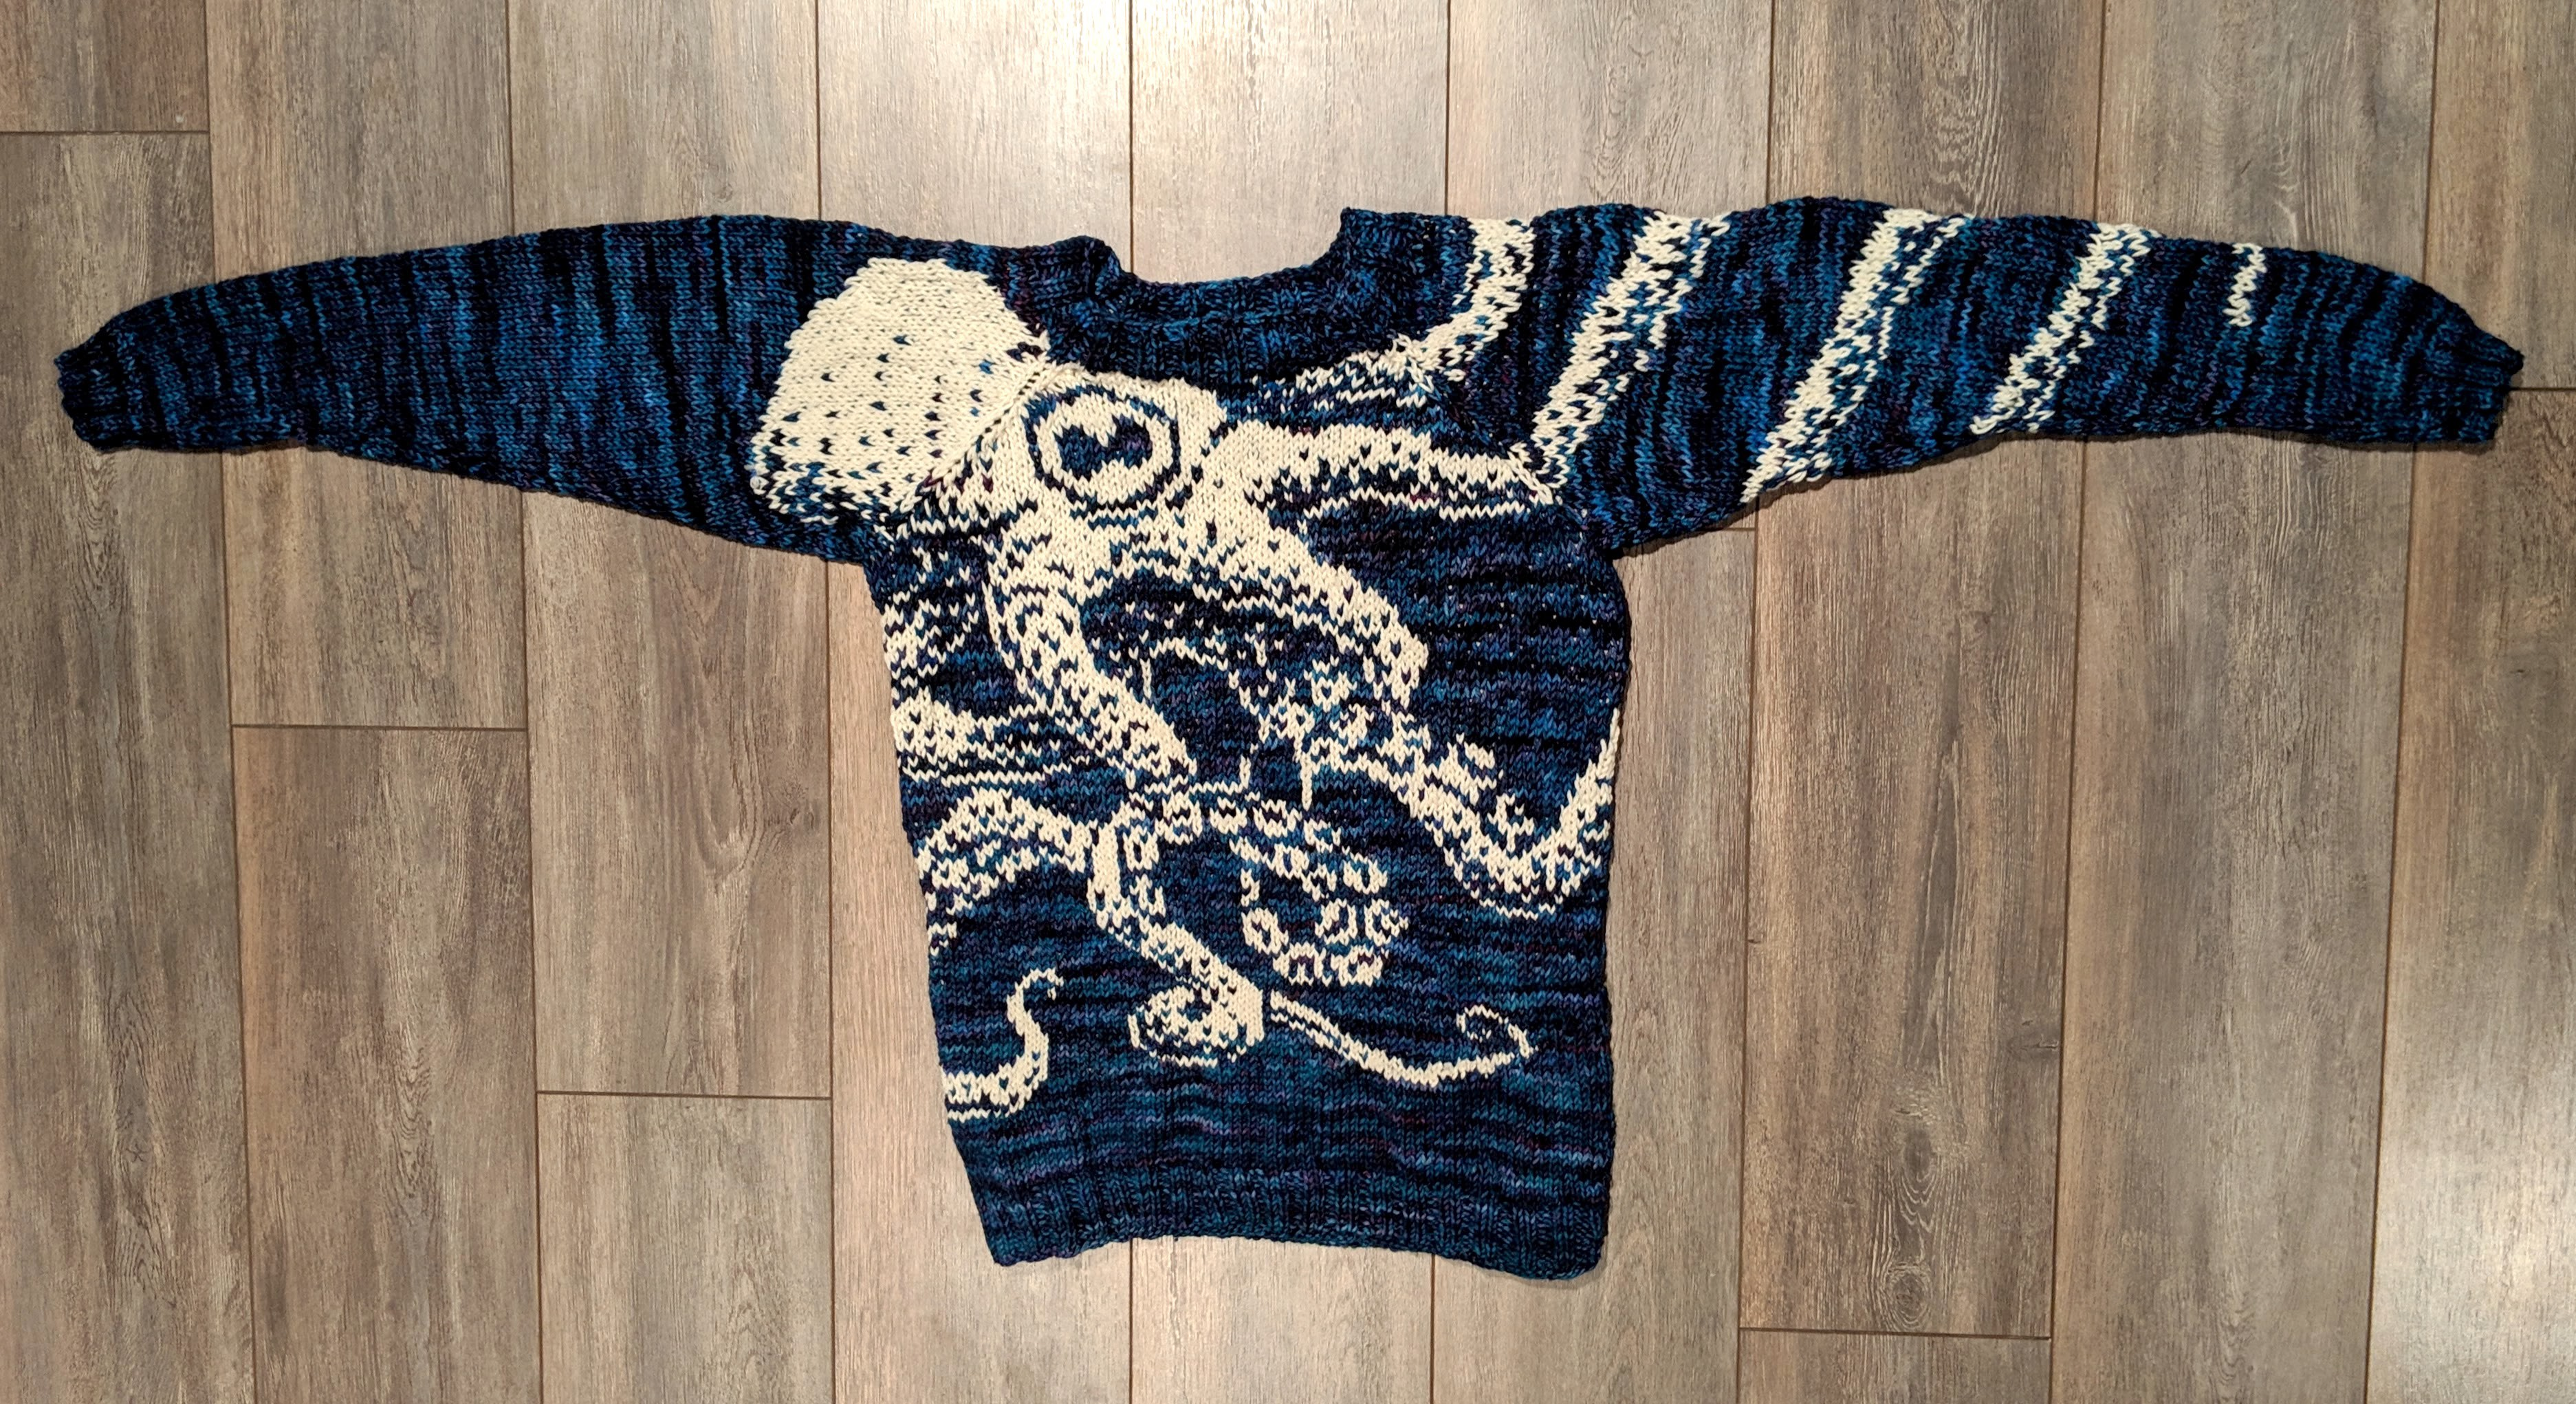 a knit octopus sweater in blue and white